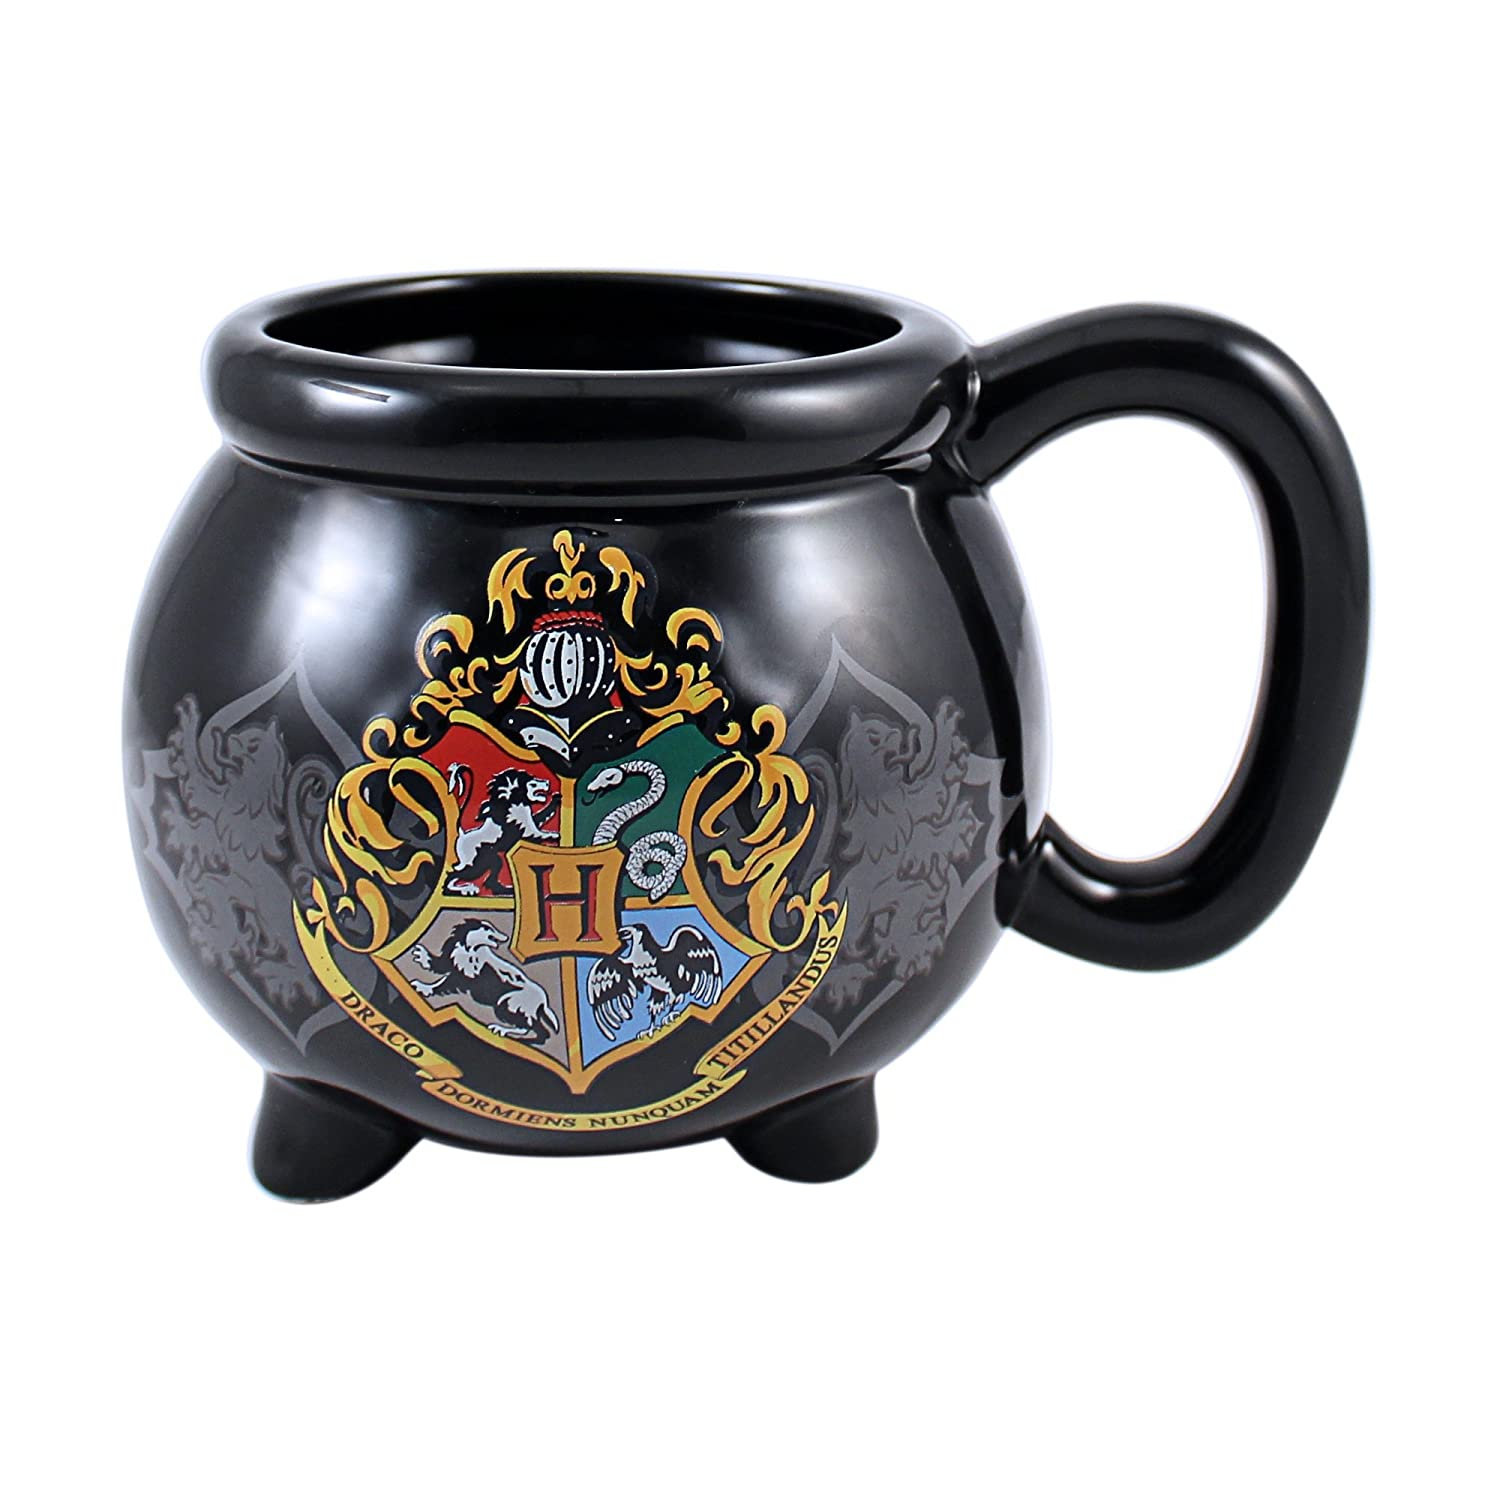 Harry Potter Hogwarts Cauldron 3D Ceramic Mug, 20 oz